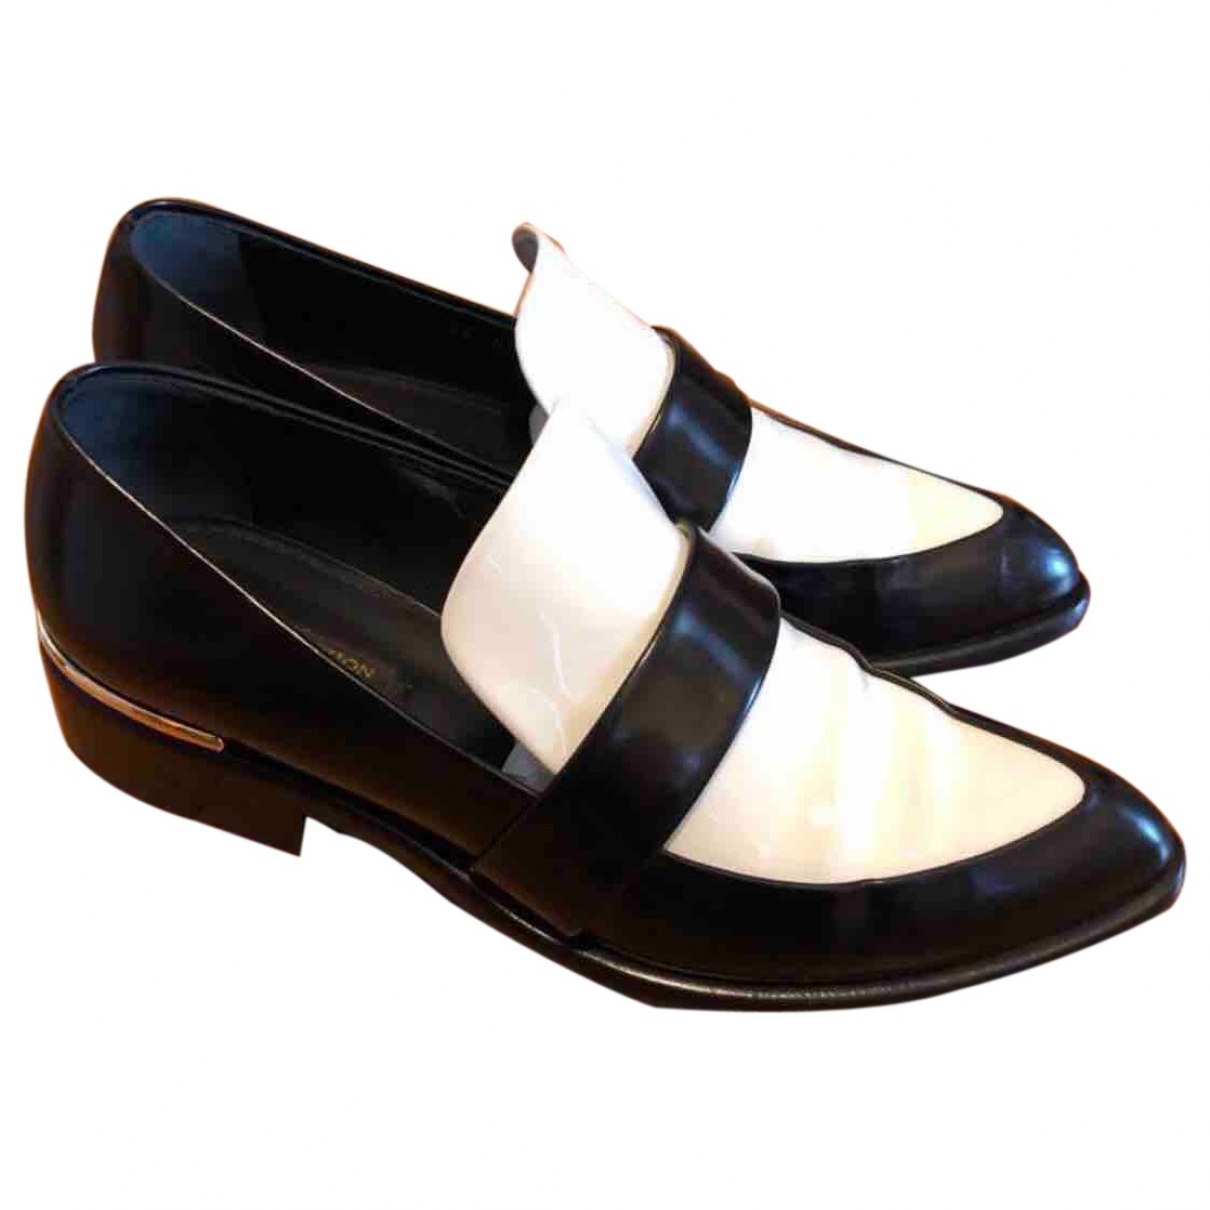 Louis Vuitton \N Black Patent leather Flats for Women 36 EU